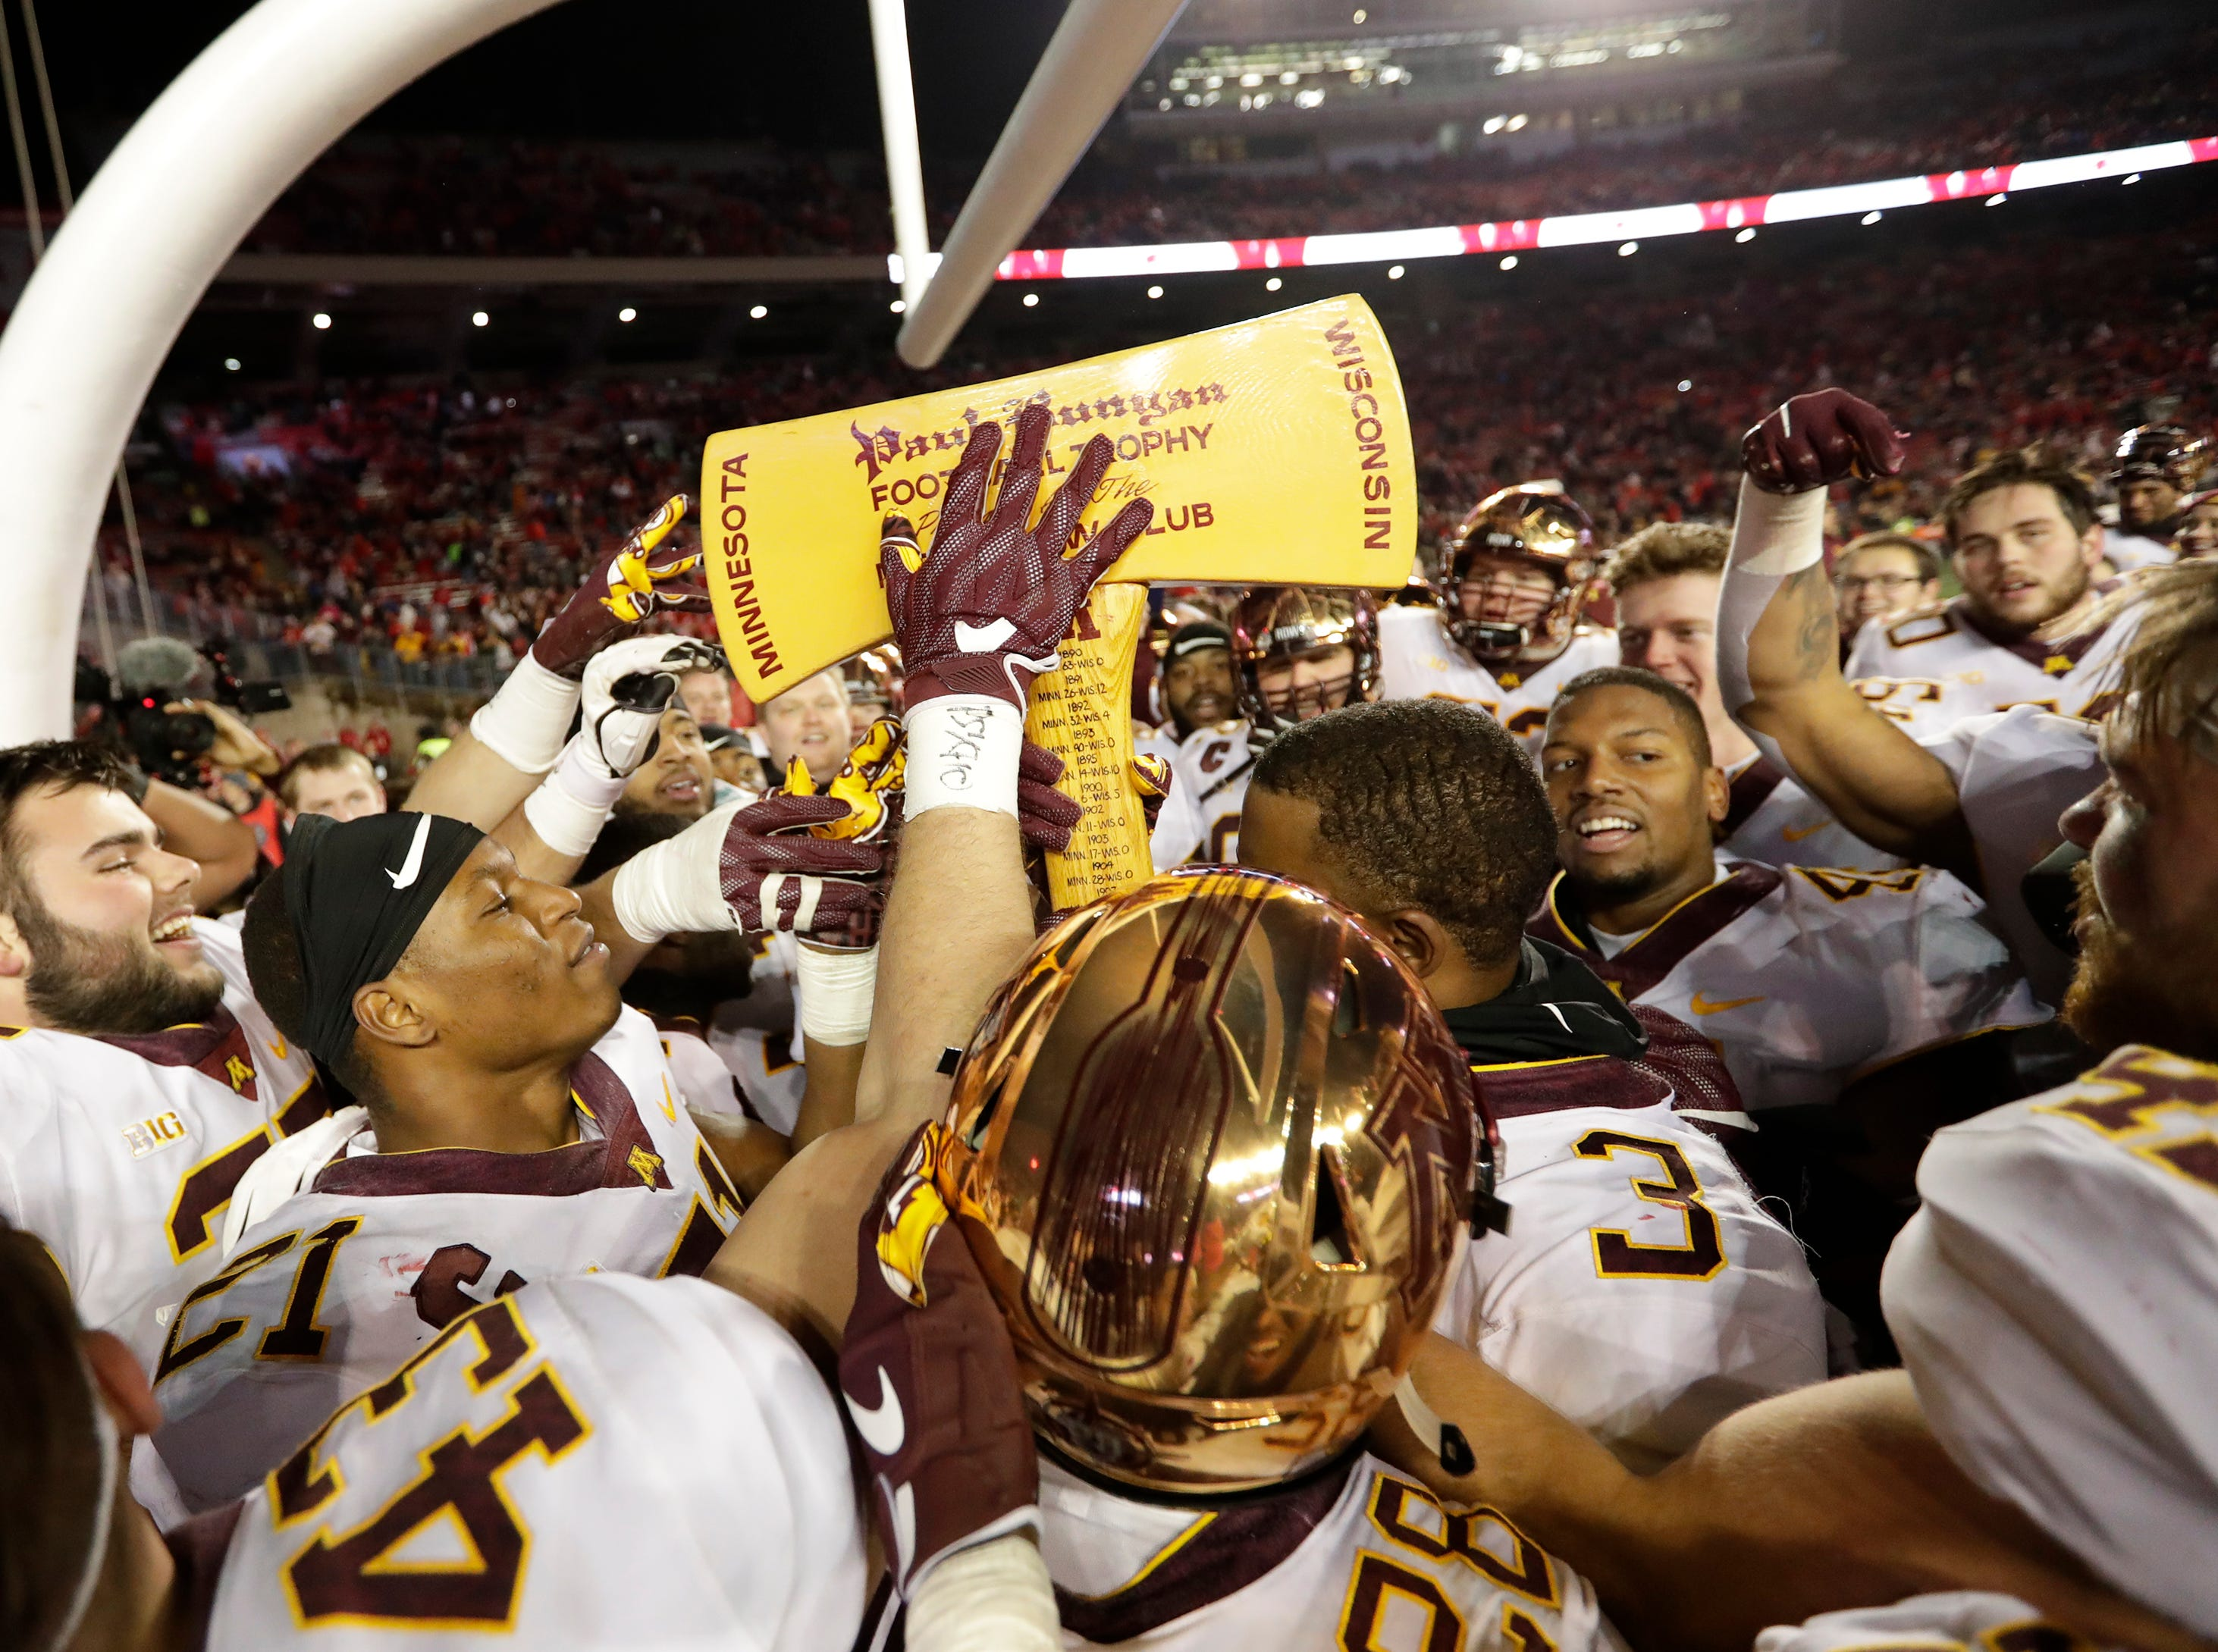 Minnesota players carry Paul Bunyan's Axe after defeating Wisconsin 37-15 Saturday, November 24, 2018, at Camp Randall Stadium in Madison, Wis. Dan Powers/USA TODAY NETWORK-Wisconsin